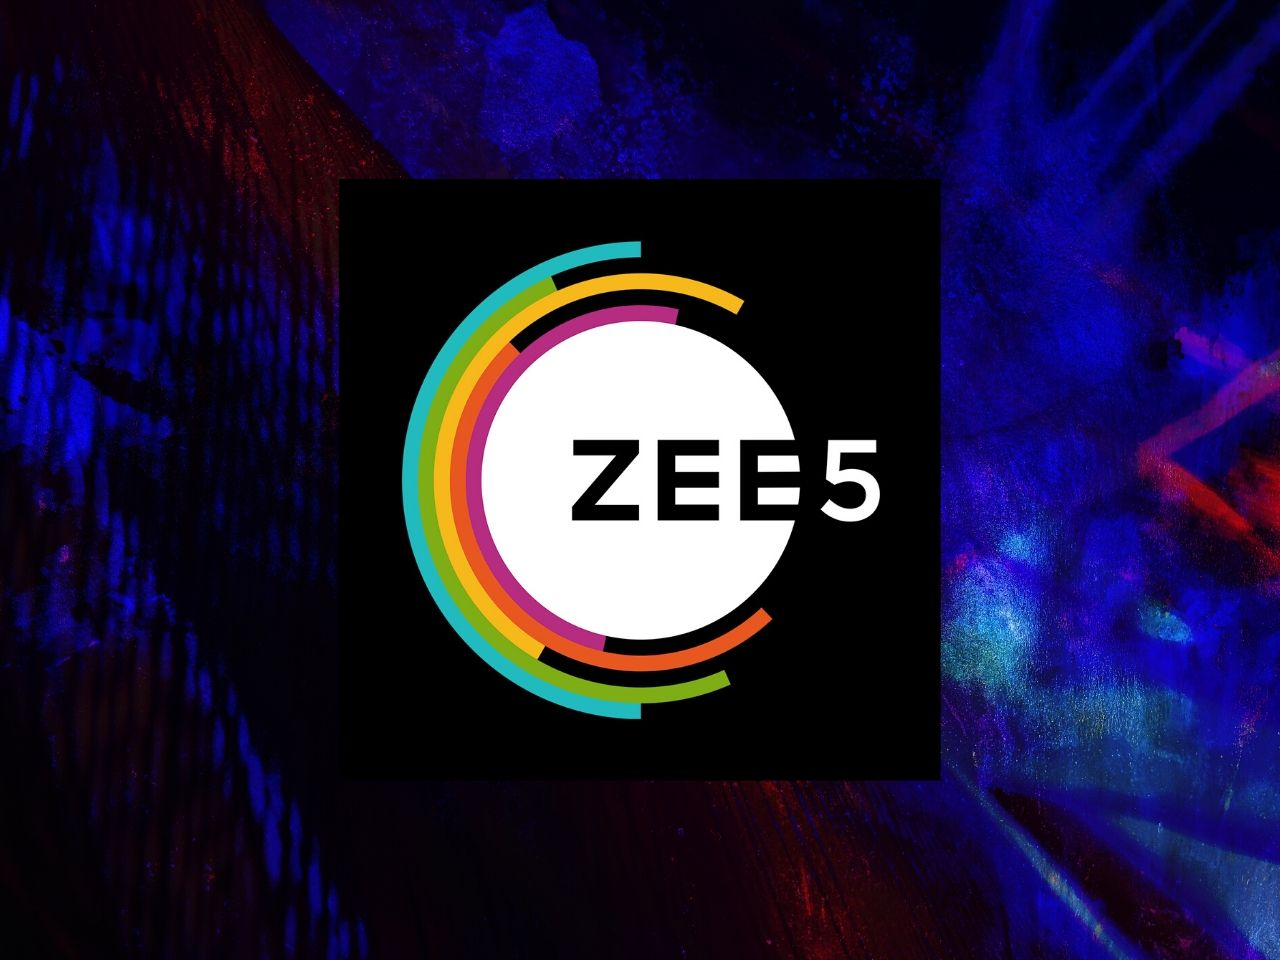 ZEE5.com hacked: Hackers claim to have stolen data from the popular OTT platform